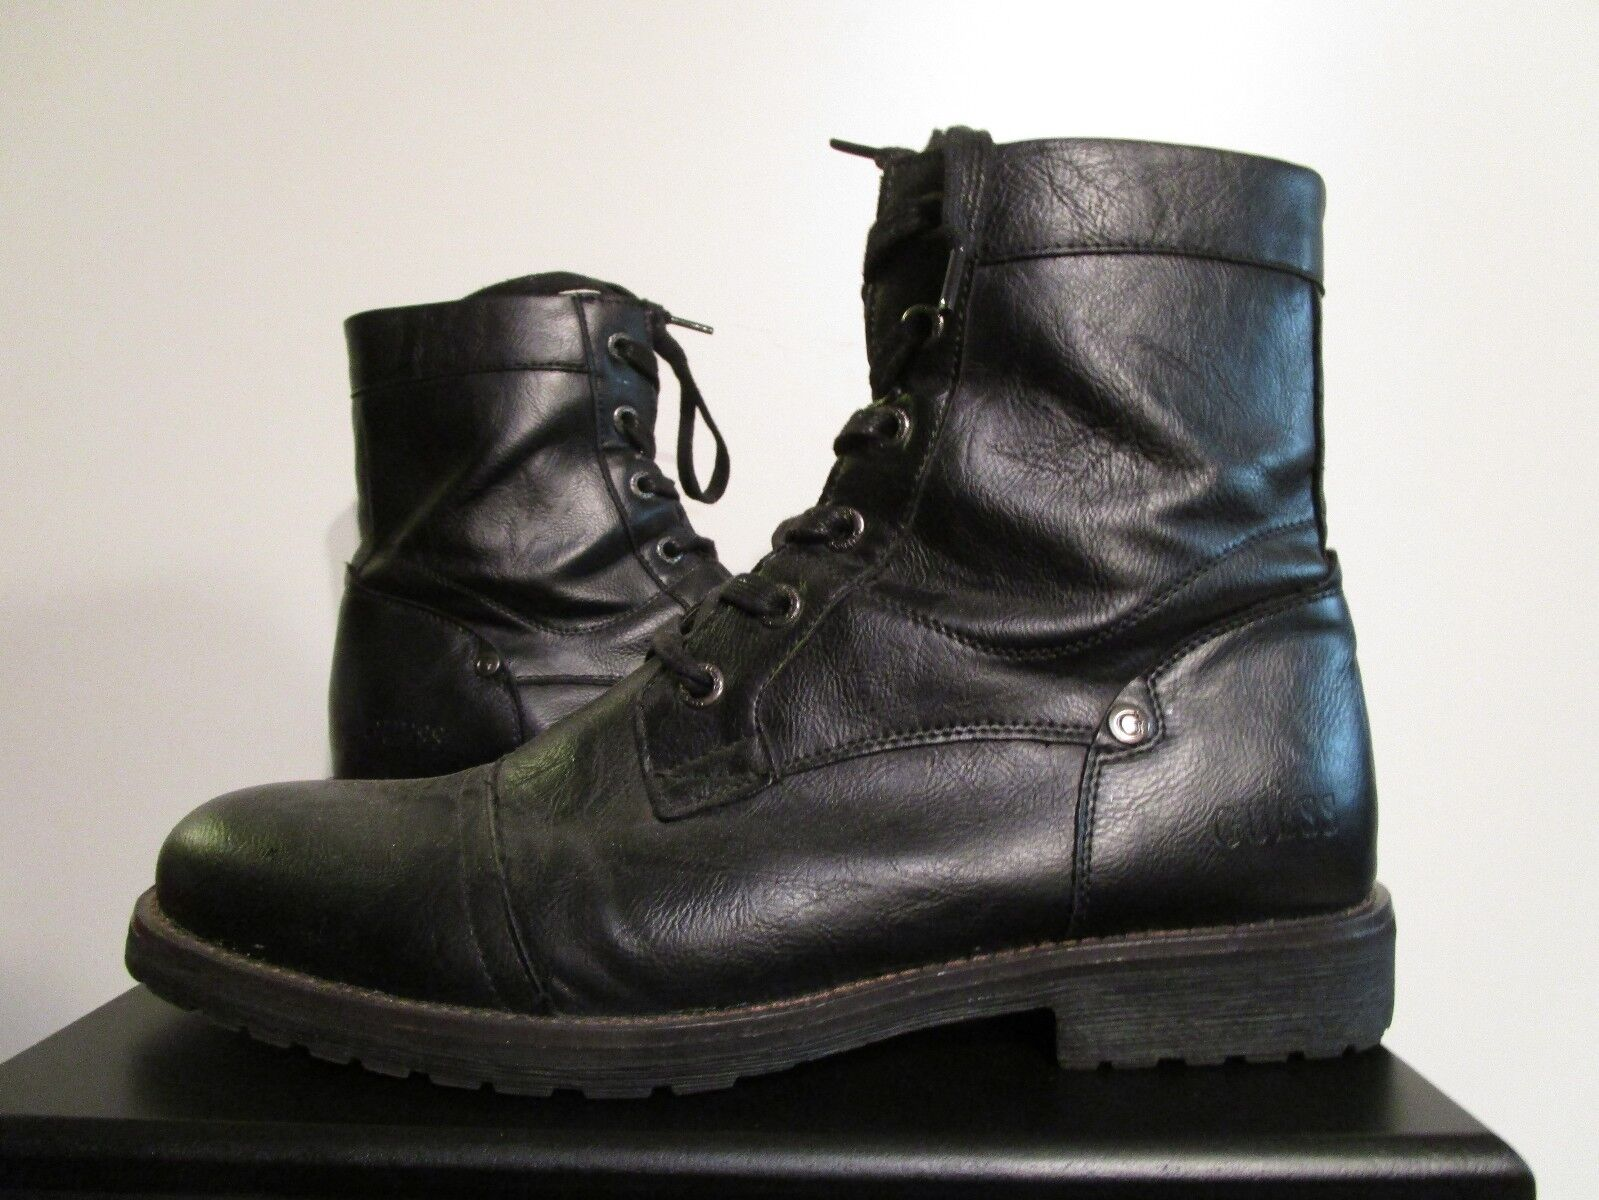 Mens 12 Guess Zip Up High Manmade Leather Fashion Casual Military Boots - Black